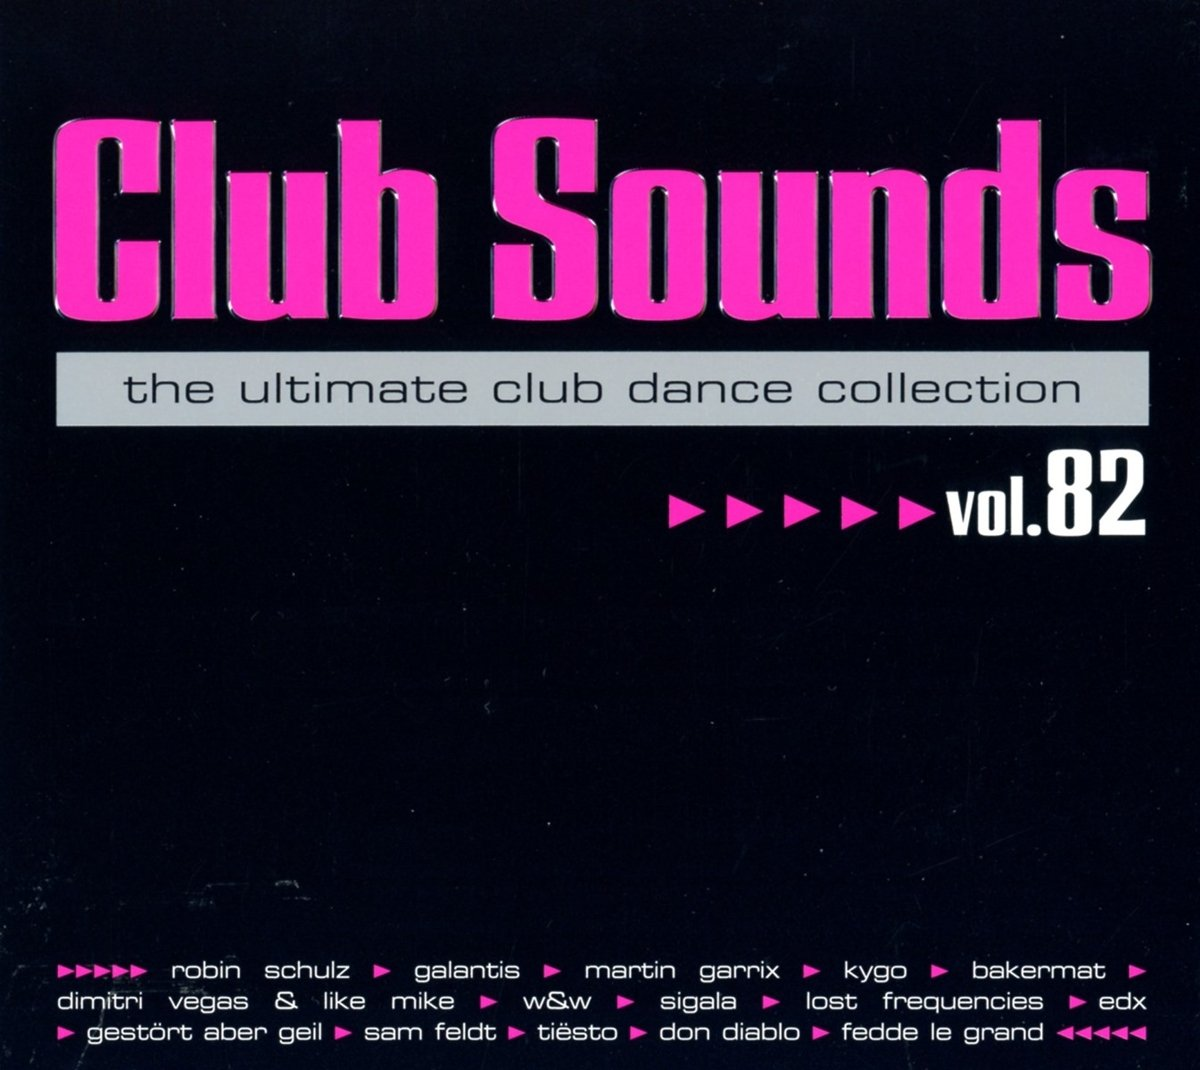 VA - Club Sounds The Ultimate Club Dance Collection Vol. 82 - 3CD - FLAC - 2017 - VOLDiES Download